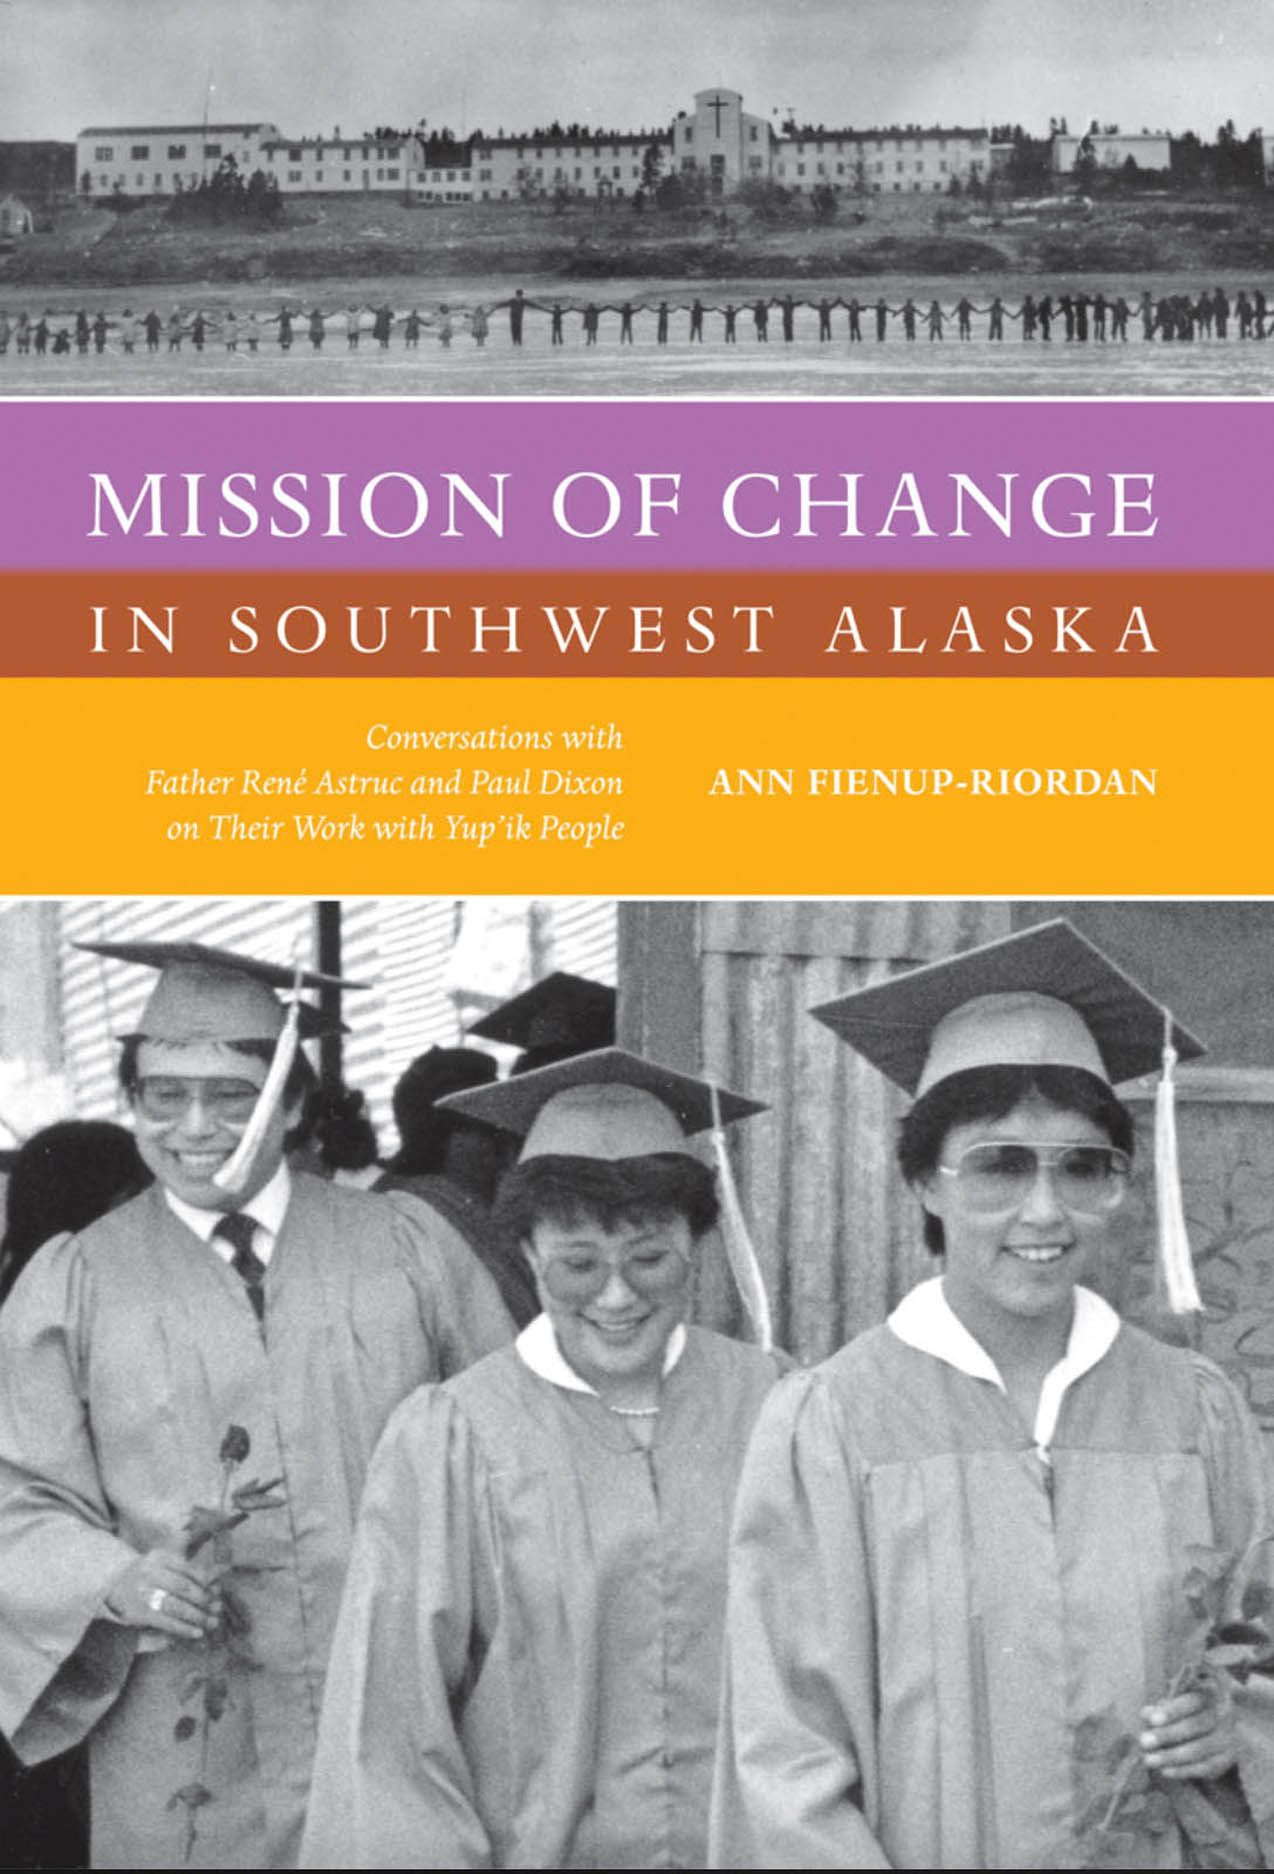 Mission of Change in Southwest Alaska: Conversations with Father René Astruc and Paul Dixon on Their Work with Yup'ik People